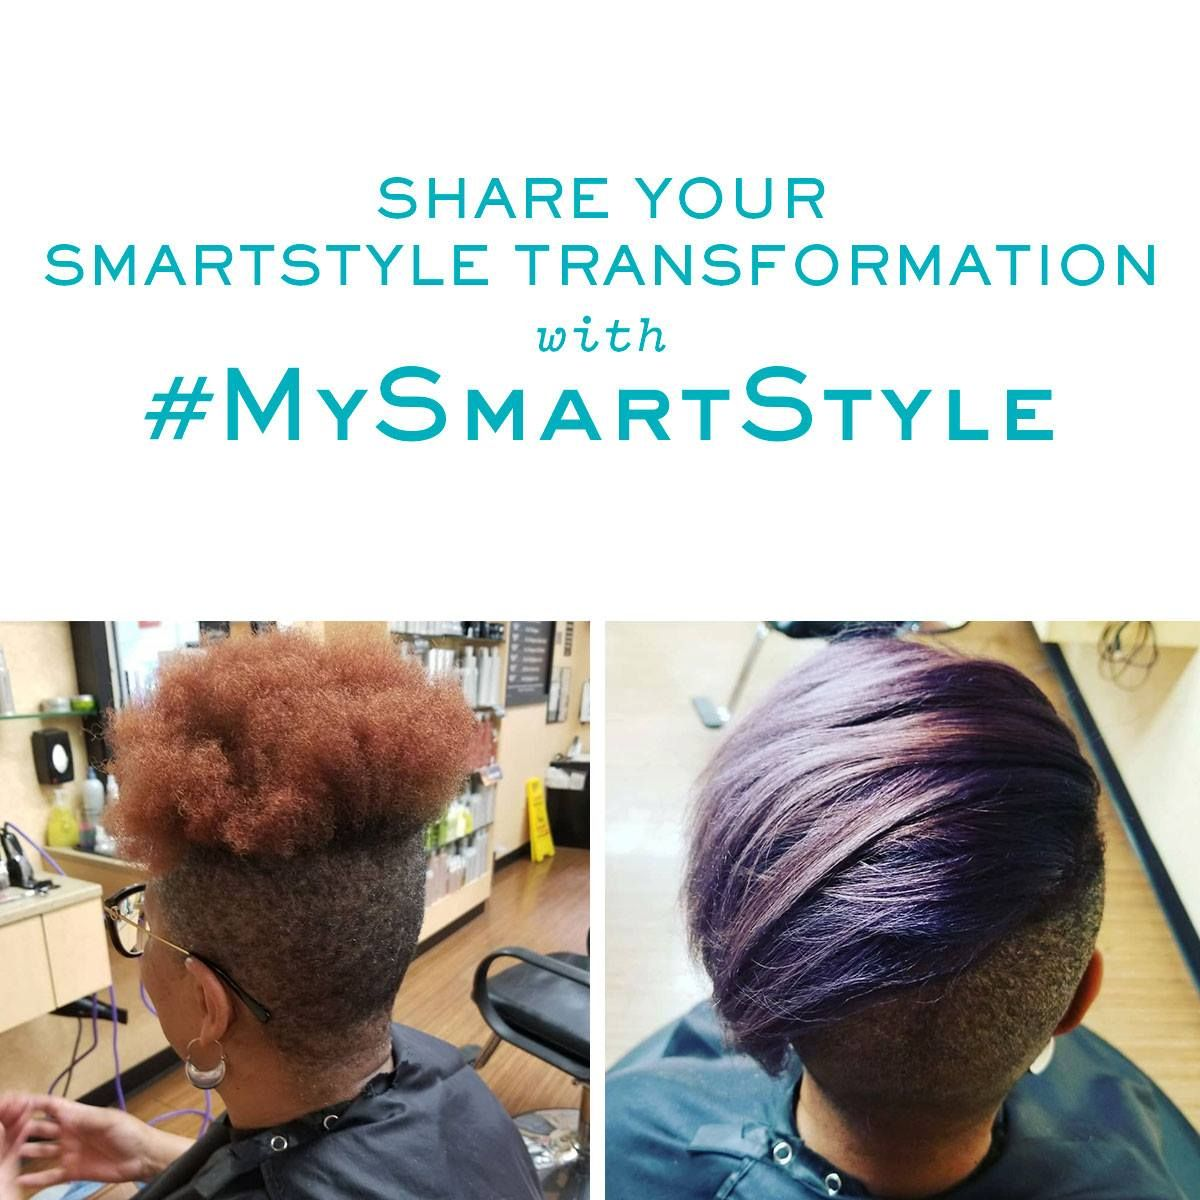 Smartstyle Stylist Nikki C In Deland Florida Gave This Guest A Whole New Look That We Love Share Your Smartsty Matrix Hair Color Fresh Haircut Matrix Hair